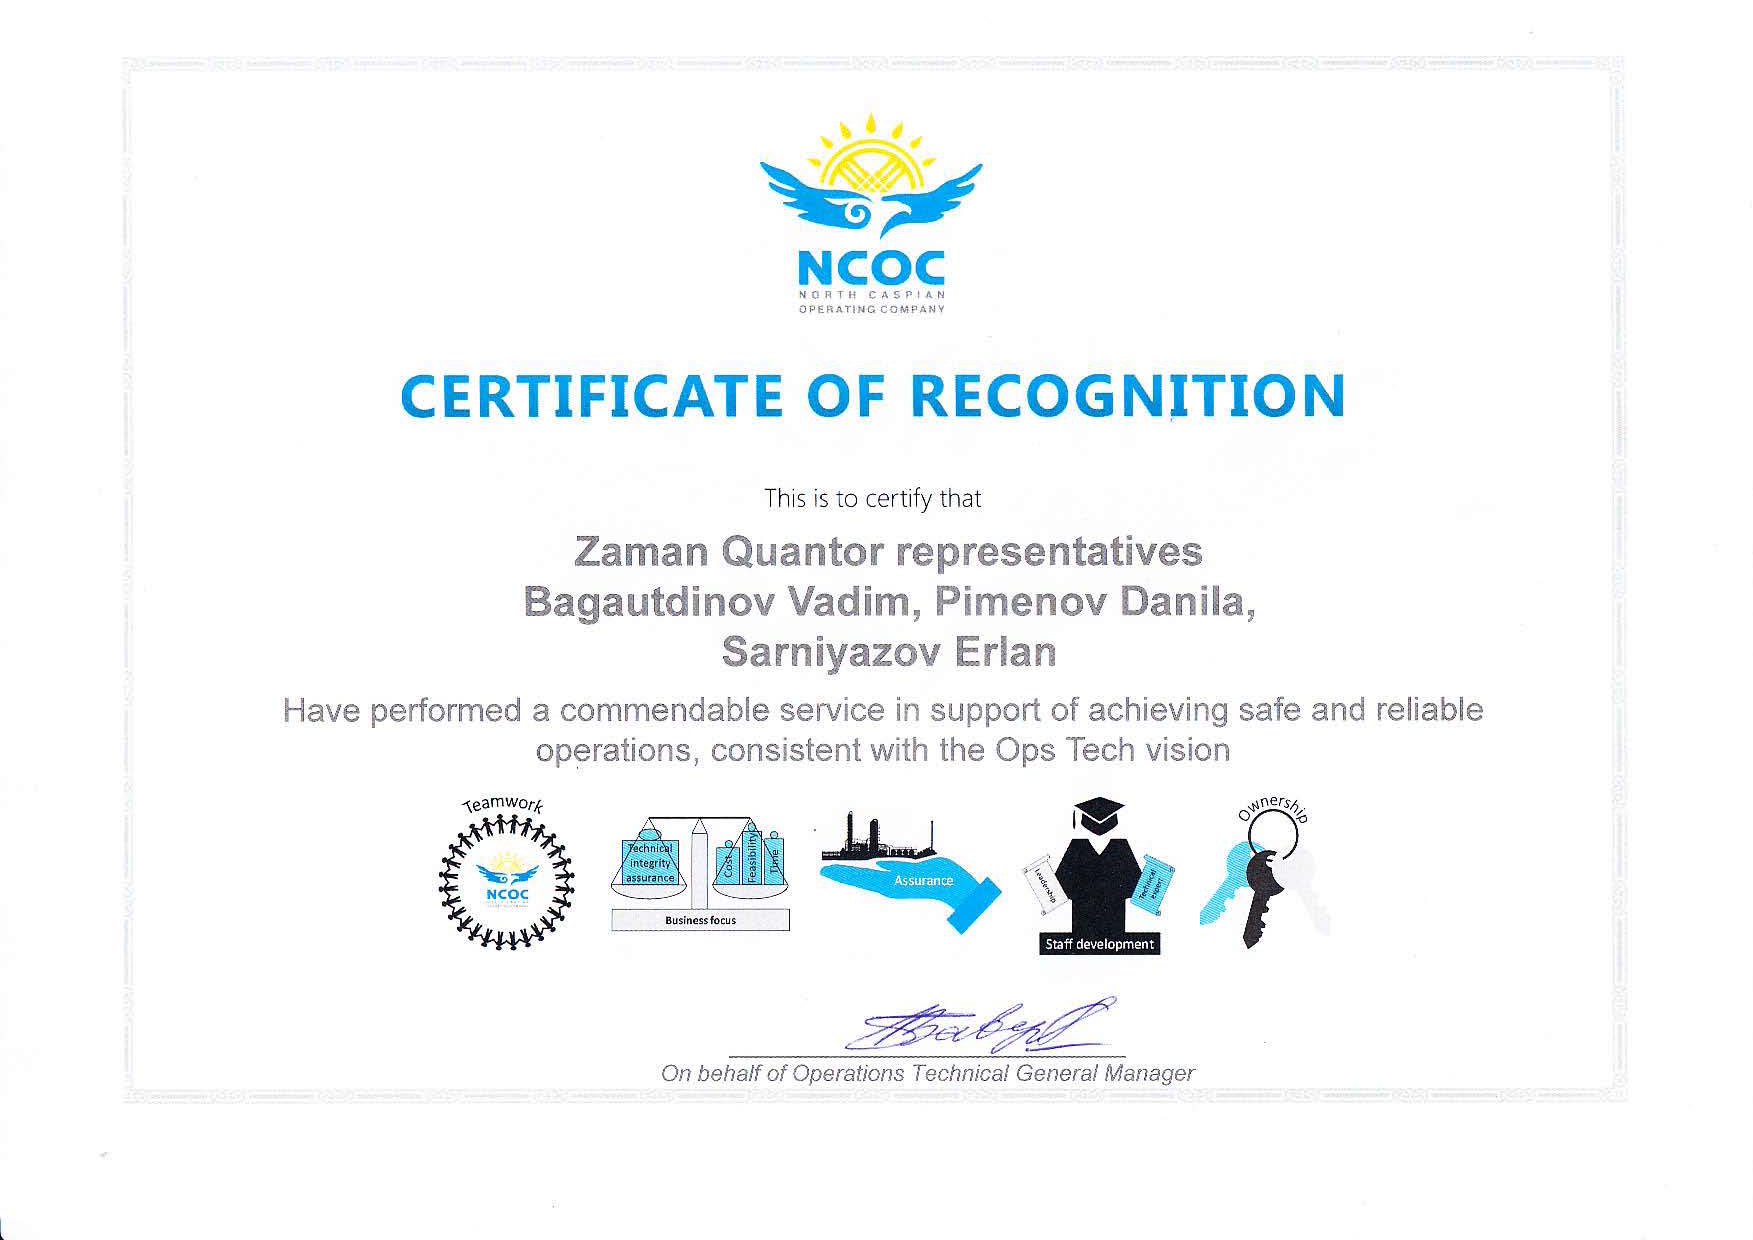 NCOC Certificate (Kazakhstan). Recognition of excellence in metrological testing, certification, design development and pre-commissioning services provided during GE-5 gas flow metering system modernization project at Bolashak plant